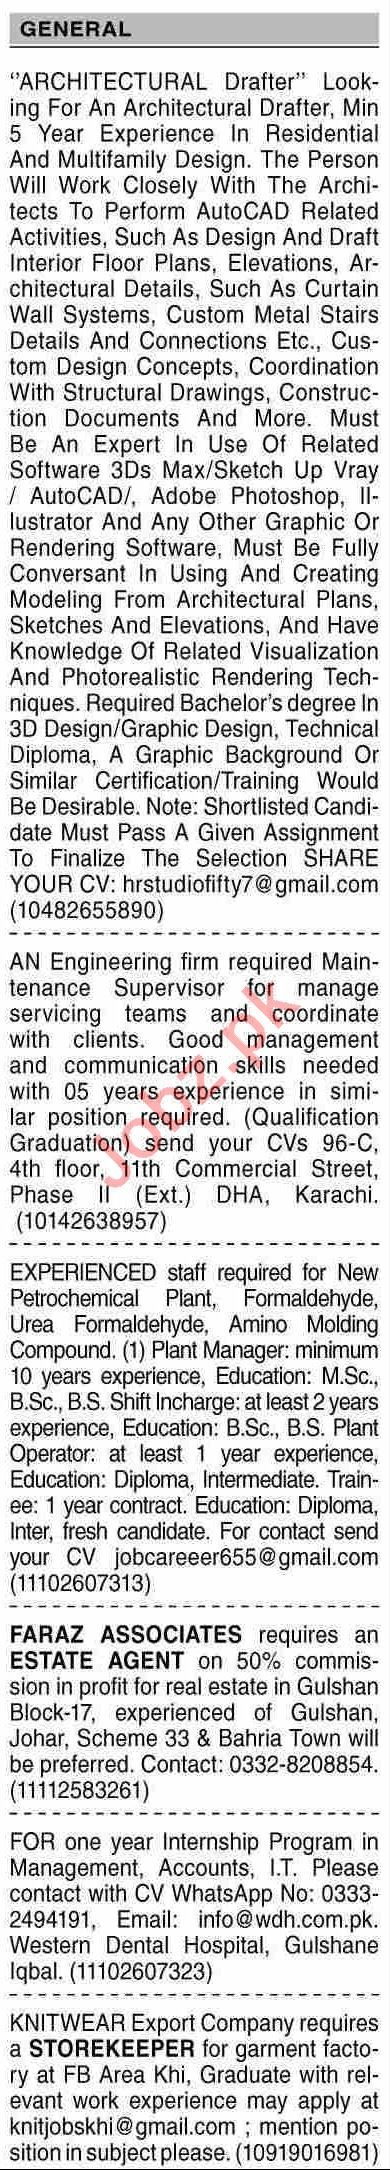 Dawn Sunday Classified Ads 1st August 2021 for General Staff